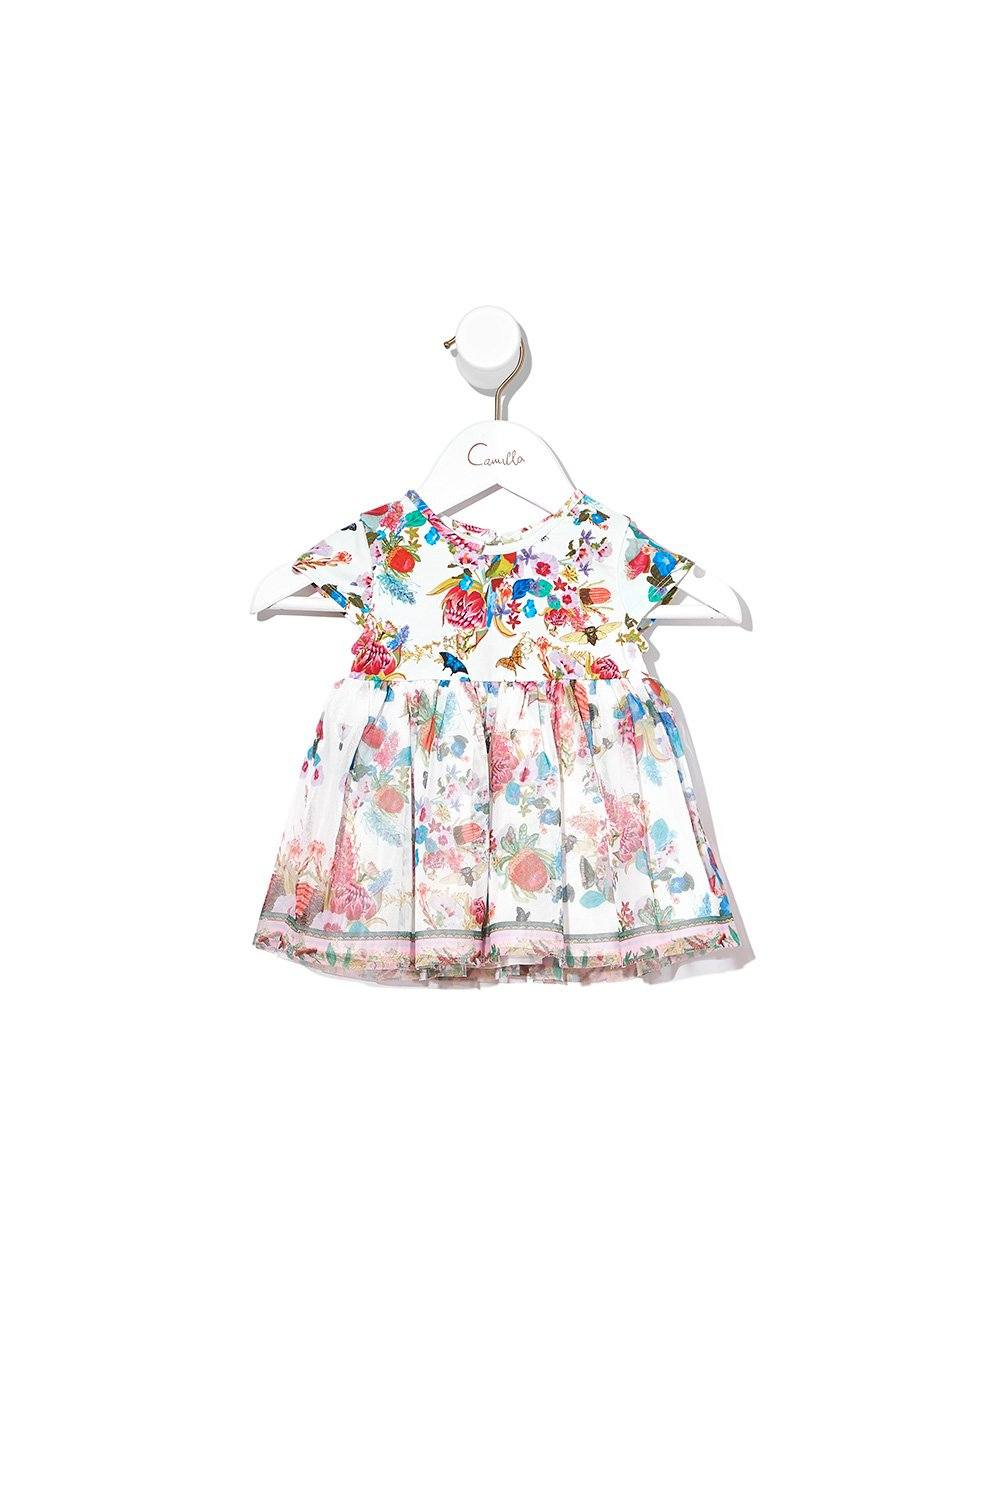 Homeward Found Jersey Tulle Dress BABY CLOTHING CAMILLA